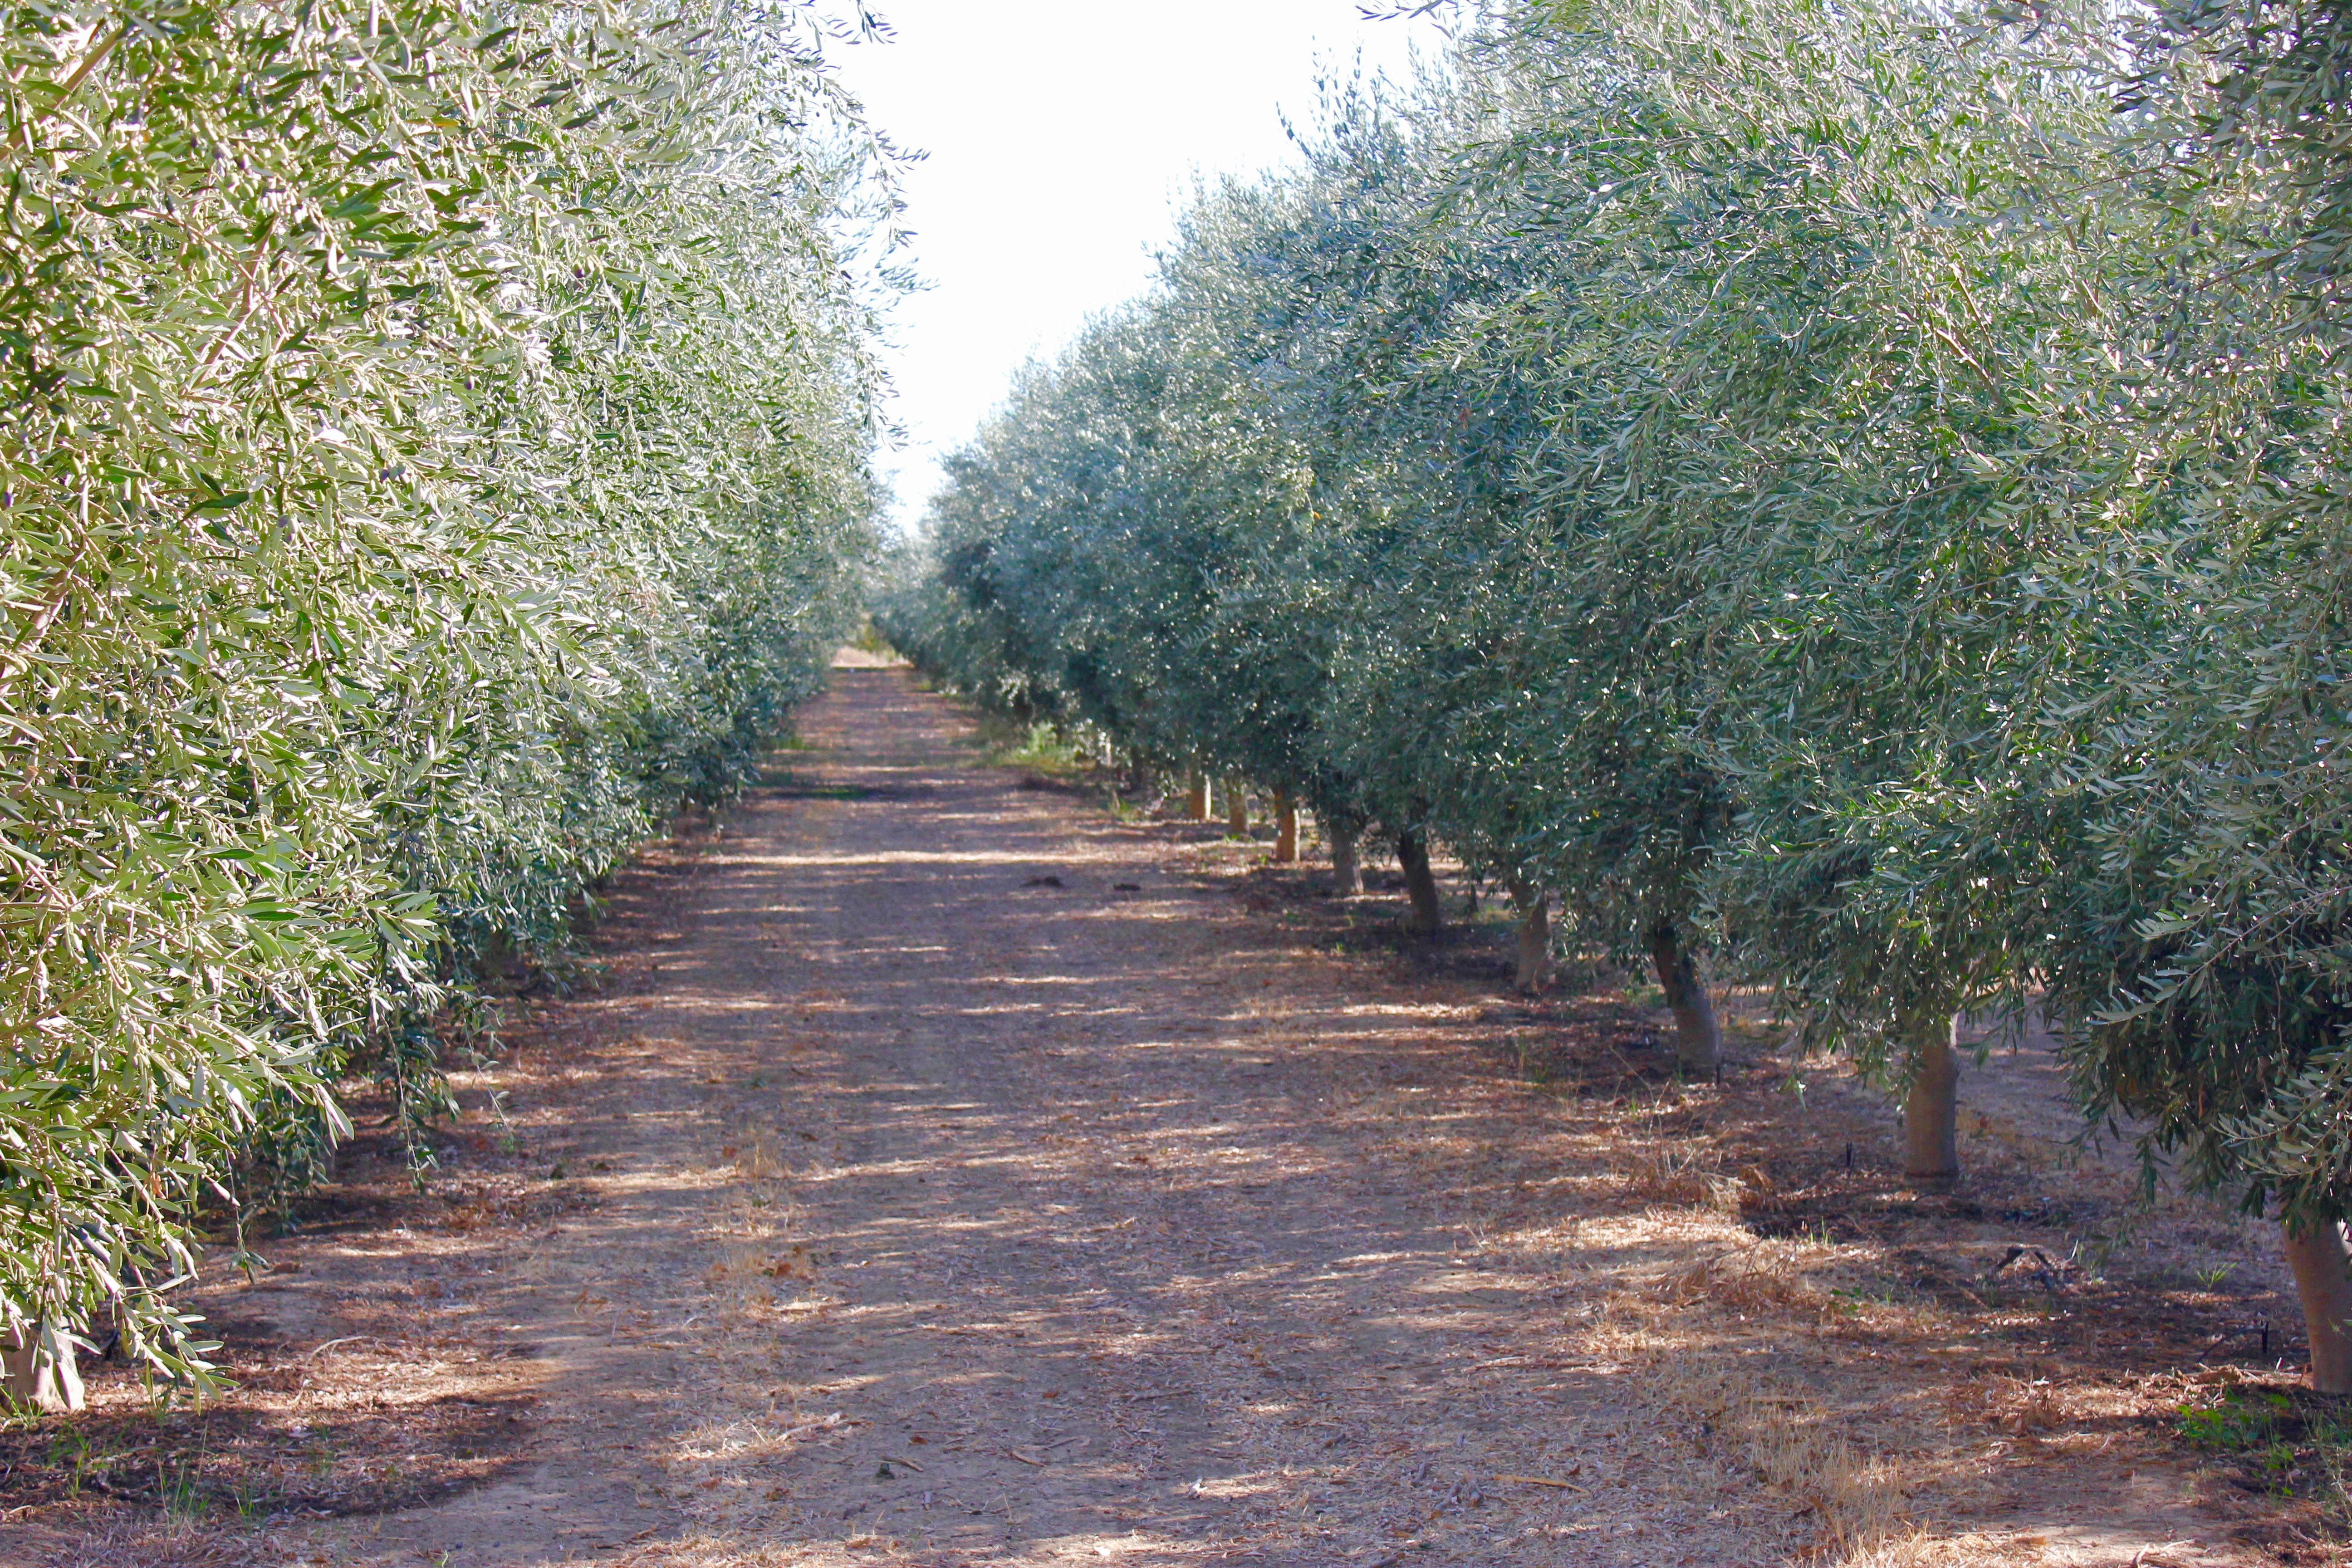 olive tree rows on left and right, with a dirt road in between, wide enough for a truck to pass.